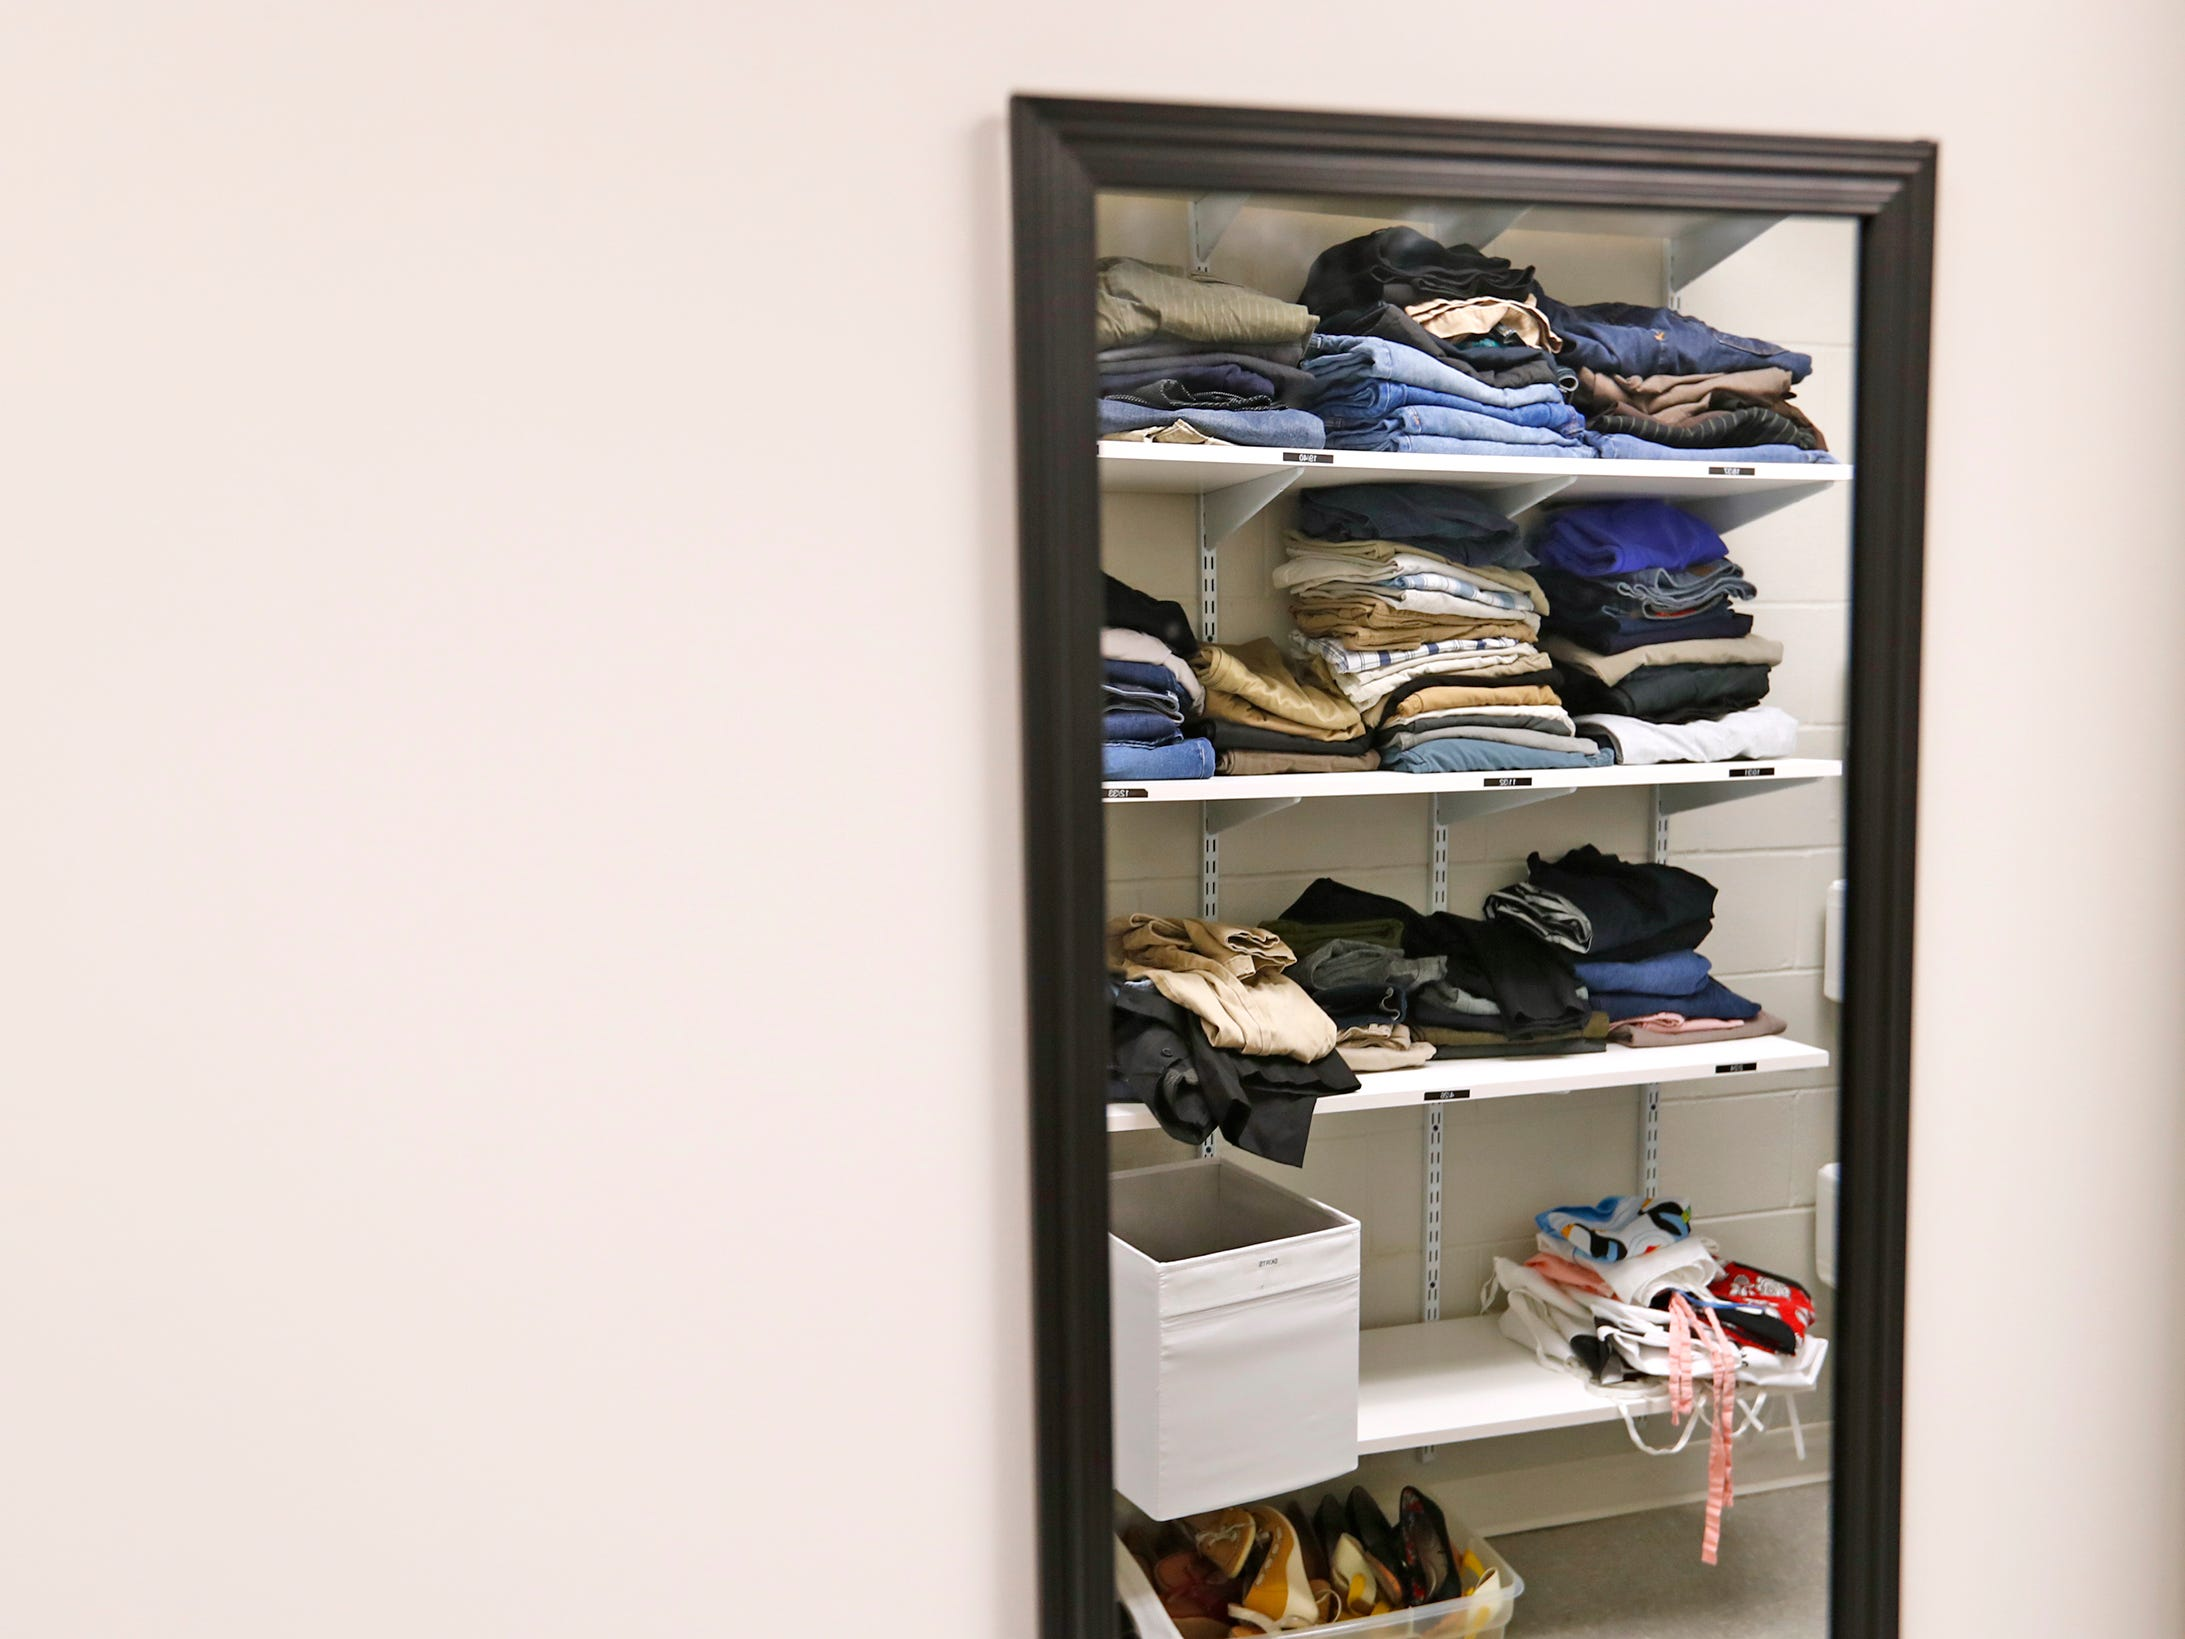 Shelves with clothes for youth are seen reflected in a mirror at Indiana Youth Group, Tuesday, Nov. 27, 2018.  The organization offers a safe drop-in center for LGBTQ+ youth, ages 12-20, and their straight ally friends, in the Indianapolis area.  Activities, tutoring, food and clothes pantries are included in the center.